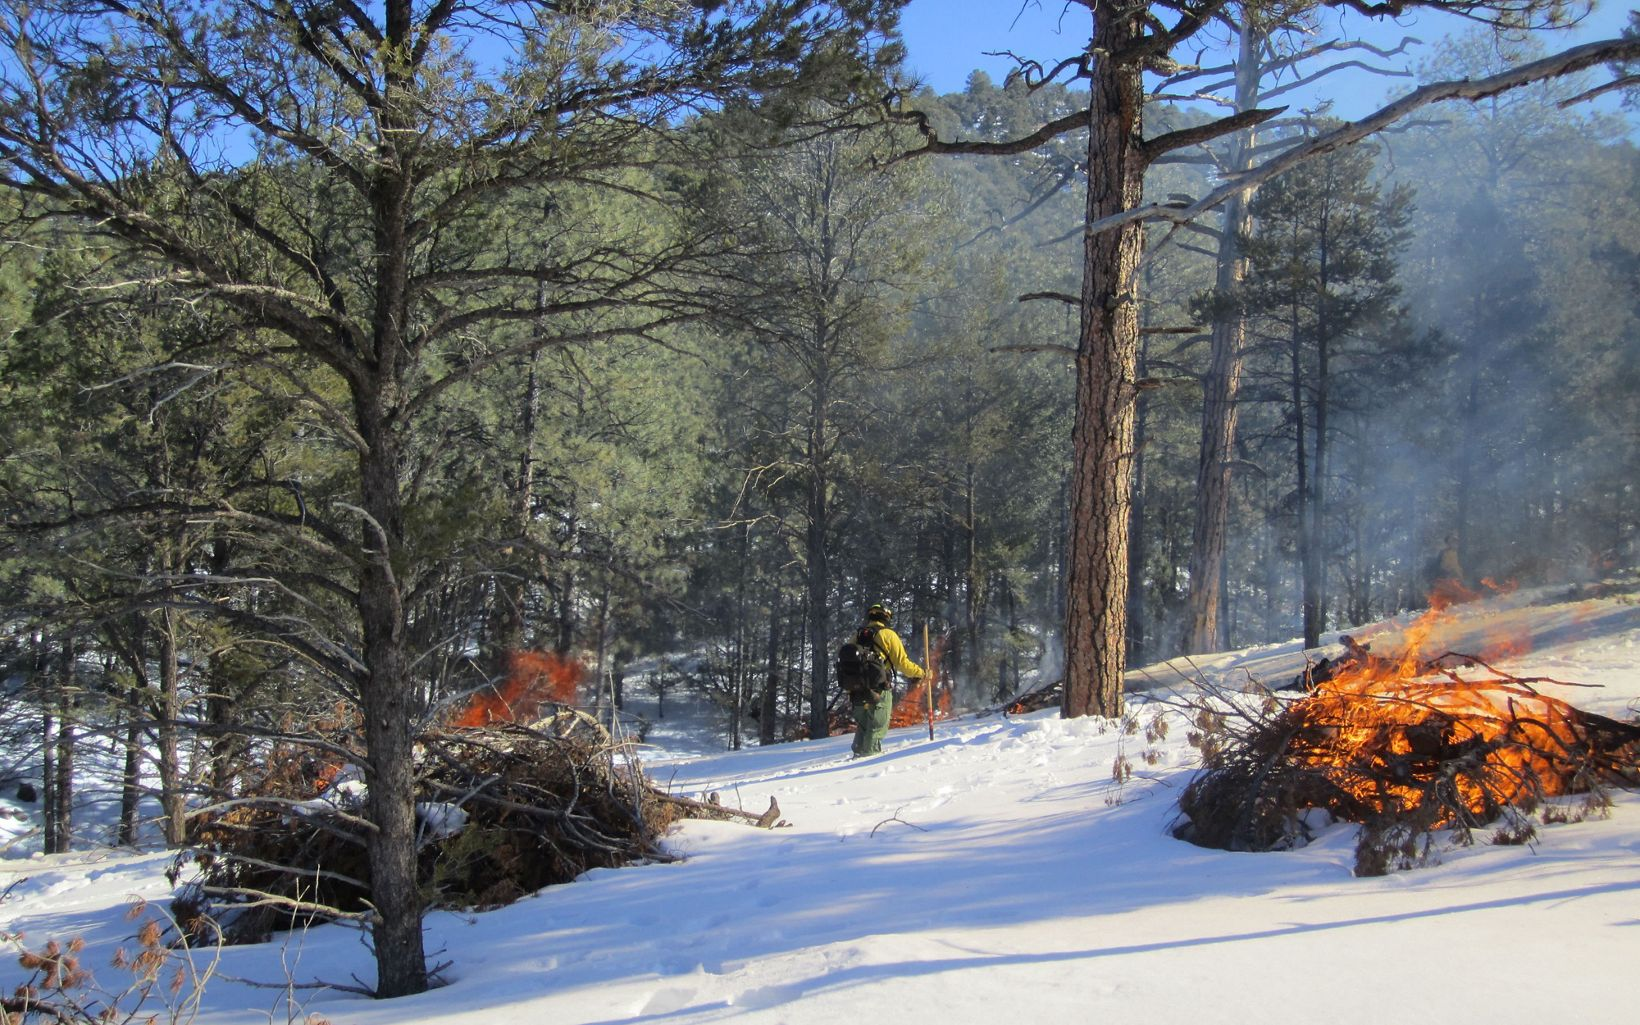 A man in yellow and green safety clothing monitors a small fire in the forest. The ground has a solid coating of white snow.